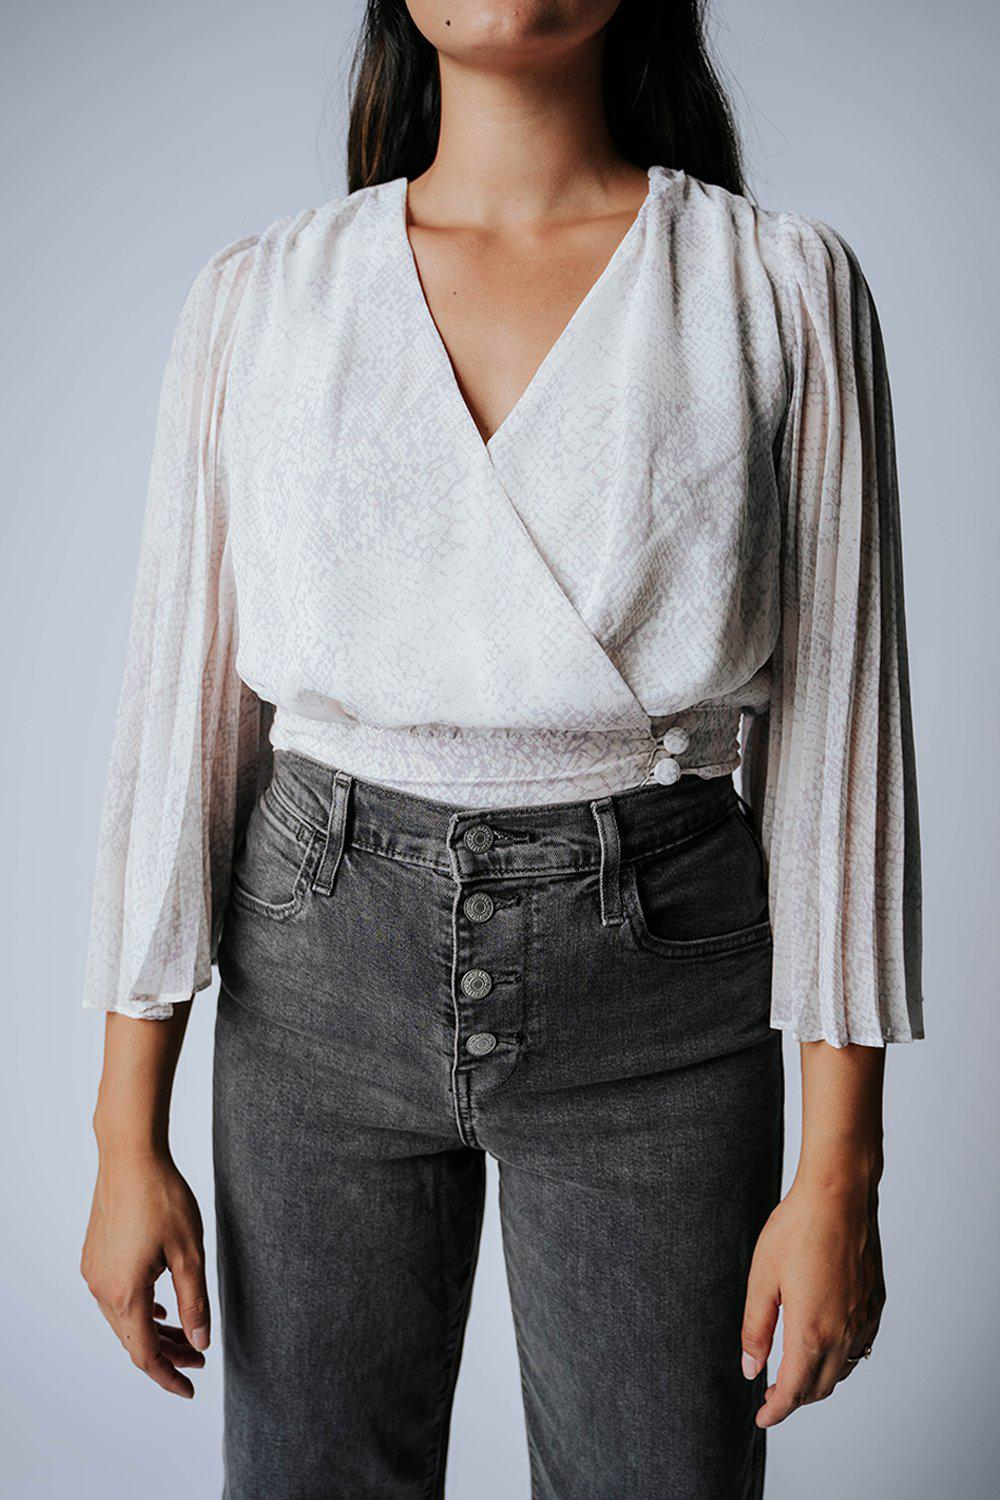 best_seller, Bite Me Snake Top, Top, women's clothing, dresses, skirts, coats, jackets, shoes, boots, tops, tee shirts, jeans, free people, levi's, rollas, jumpsuits, bottoms, tops, sweaters, pullovers, pants, shorts, sweats,.